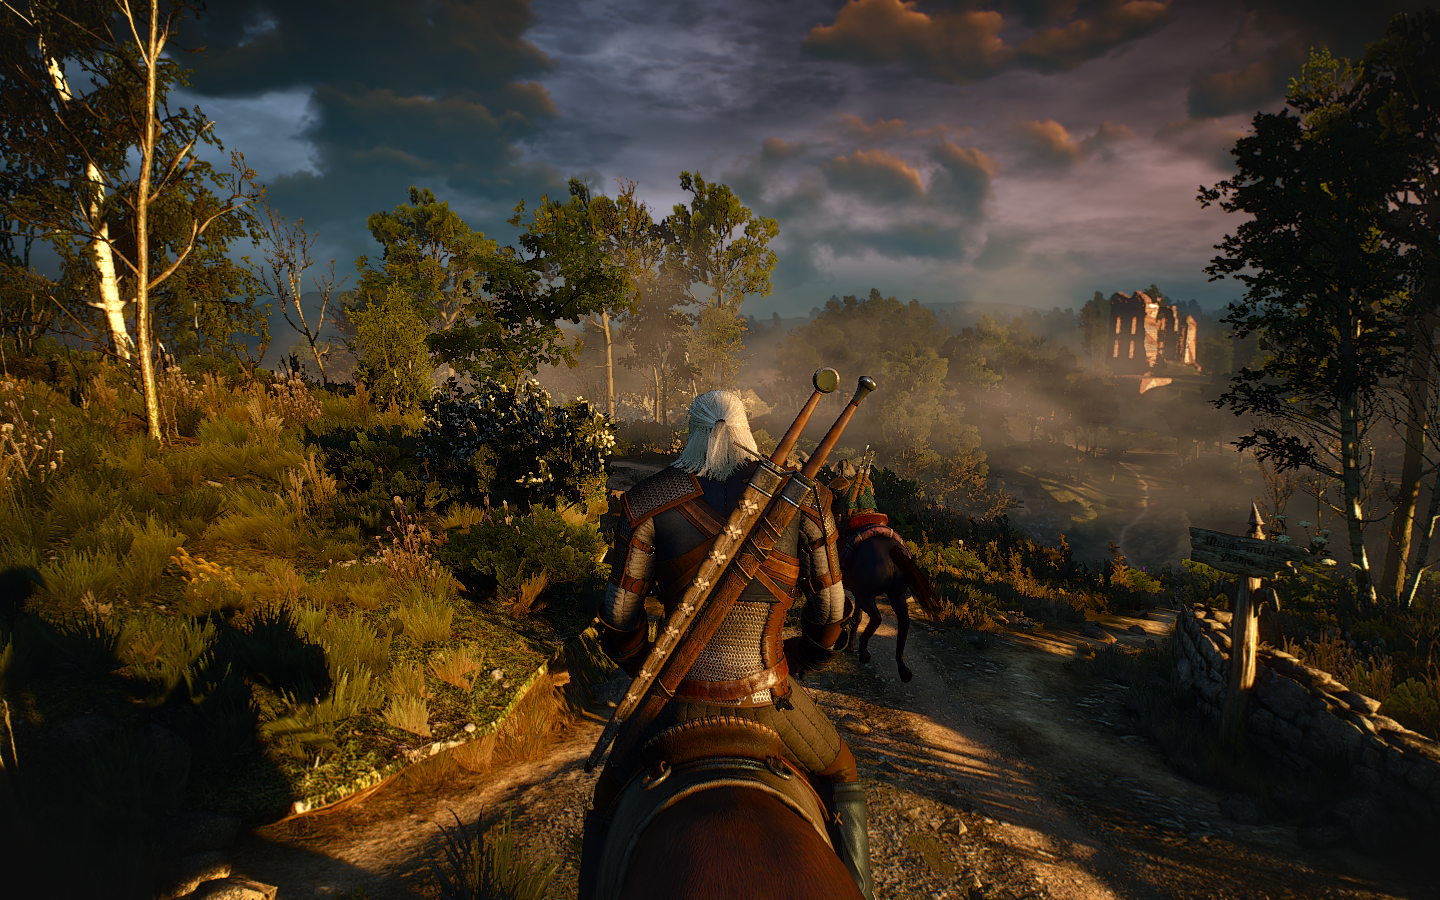 The Witcher 3 Screenshot 2018.08.25 - 21.38.32.14.png - Witcher 3: Wild Hunt, the